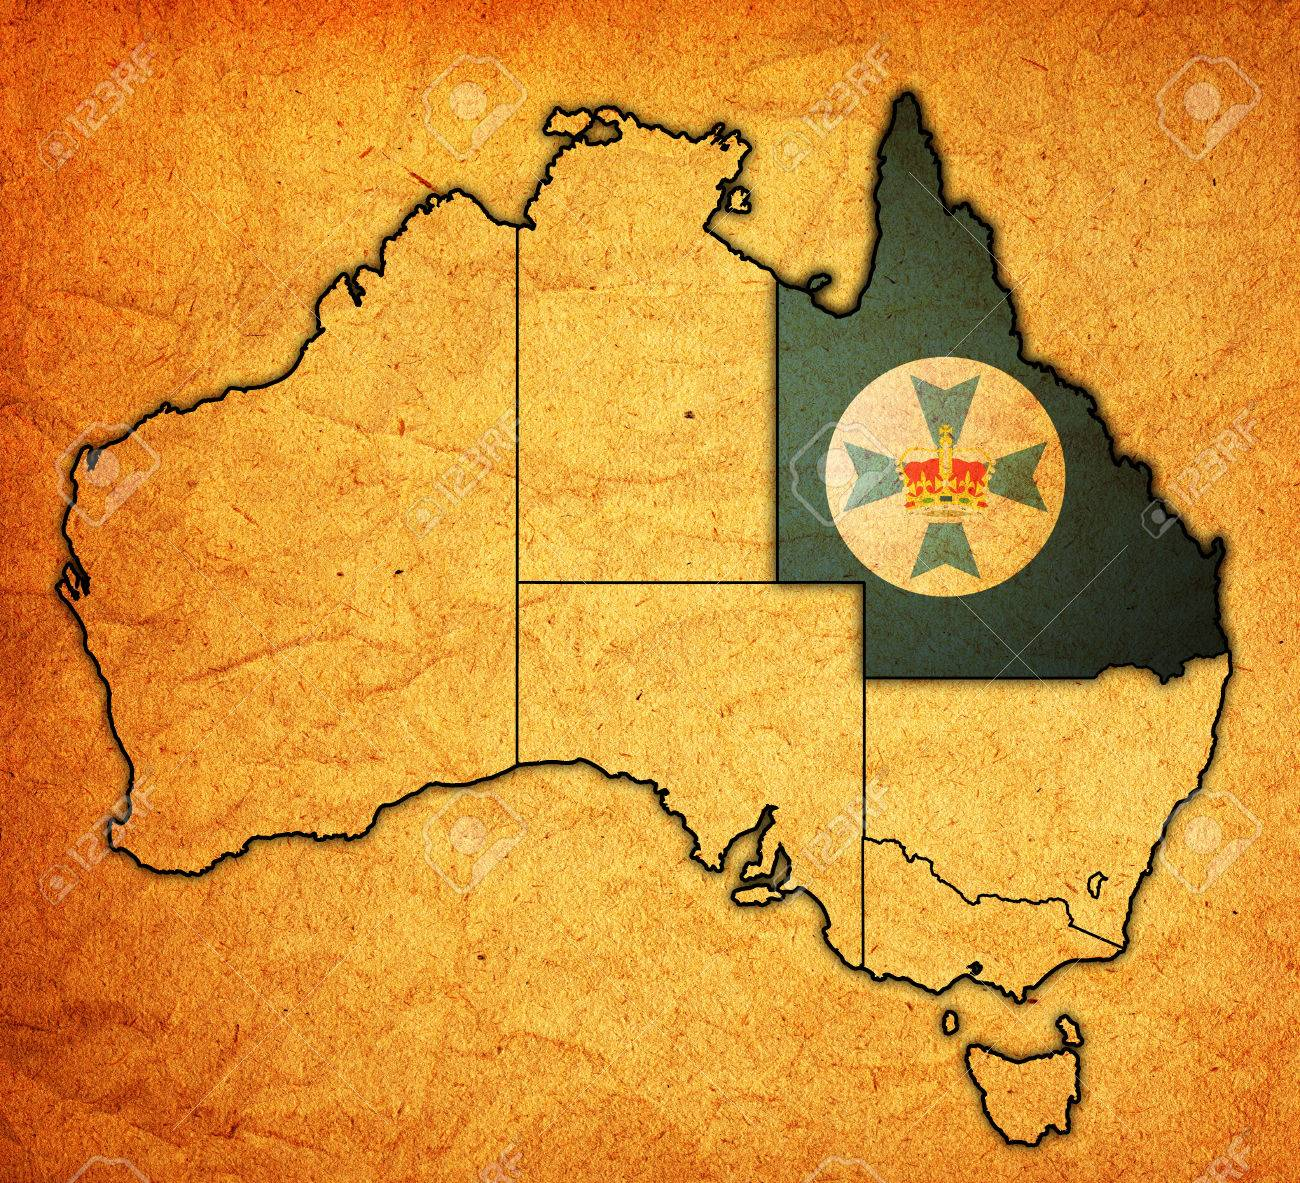 Queensland Flag On Map Of Australia With Administrative Divisions